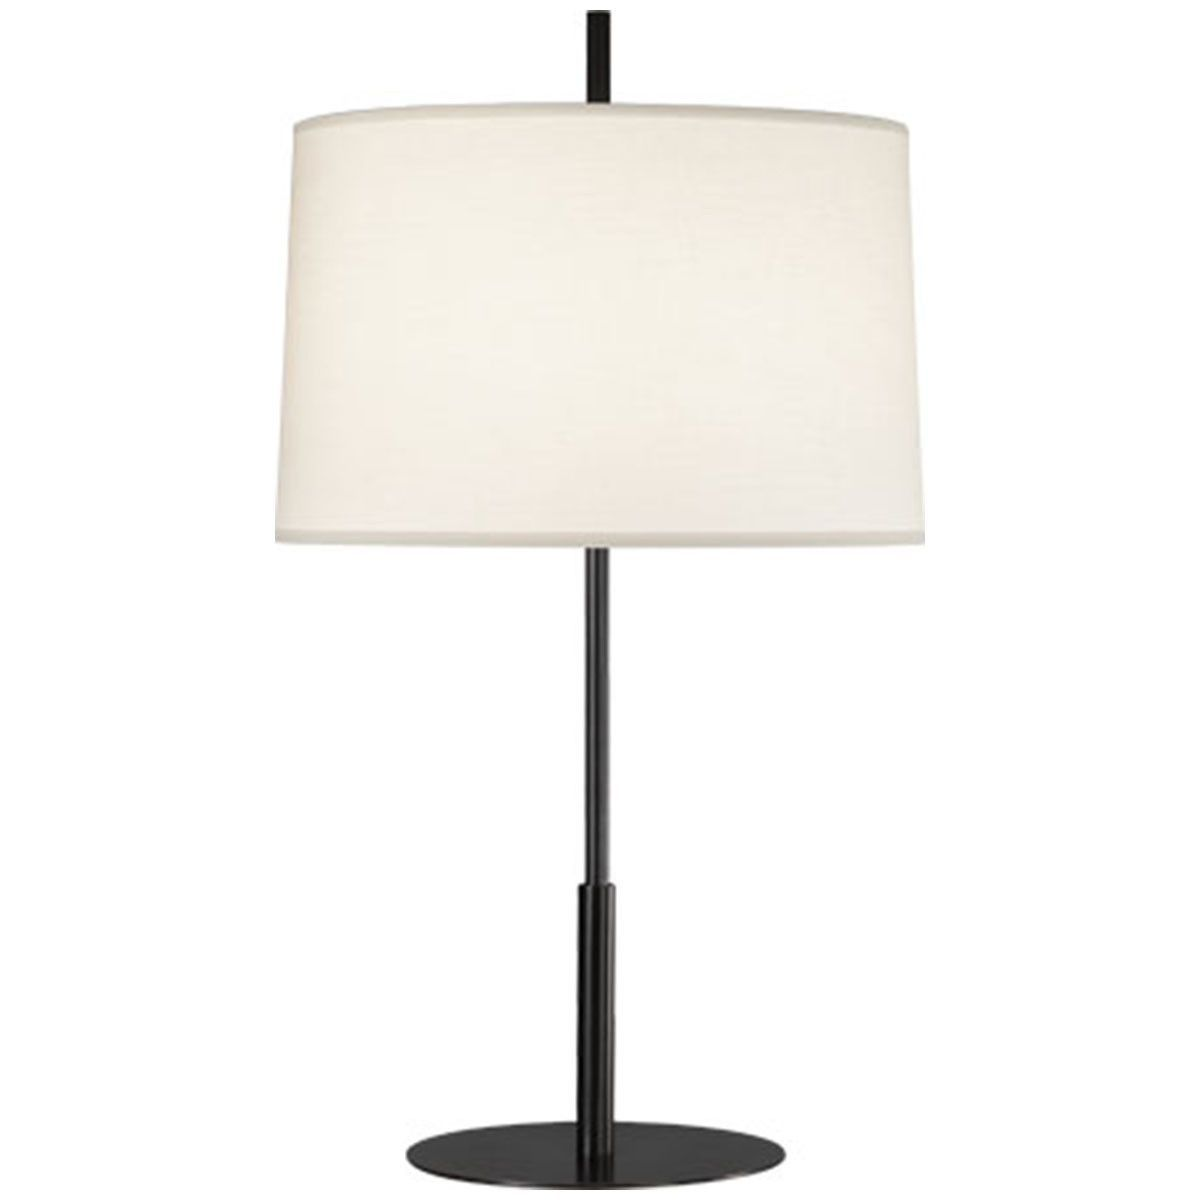 Robert Abbey Echo Table Lamp S2180